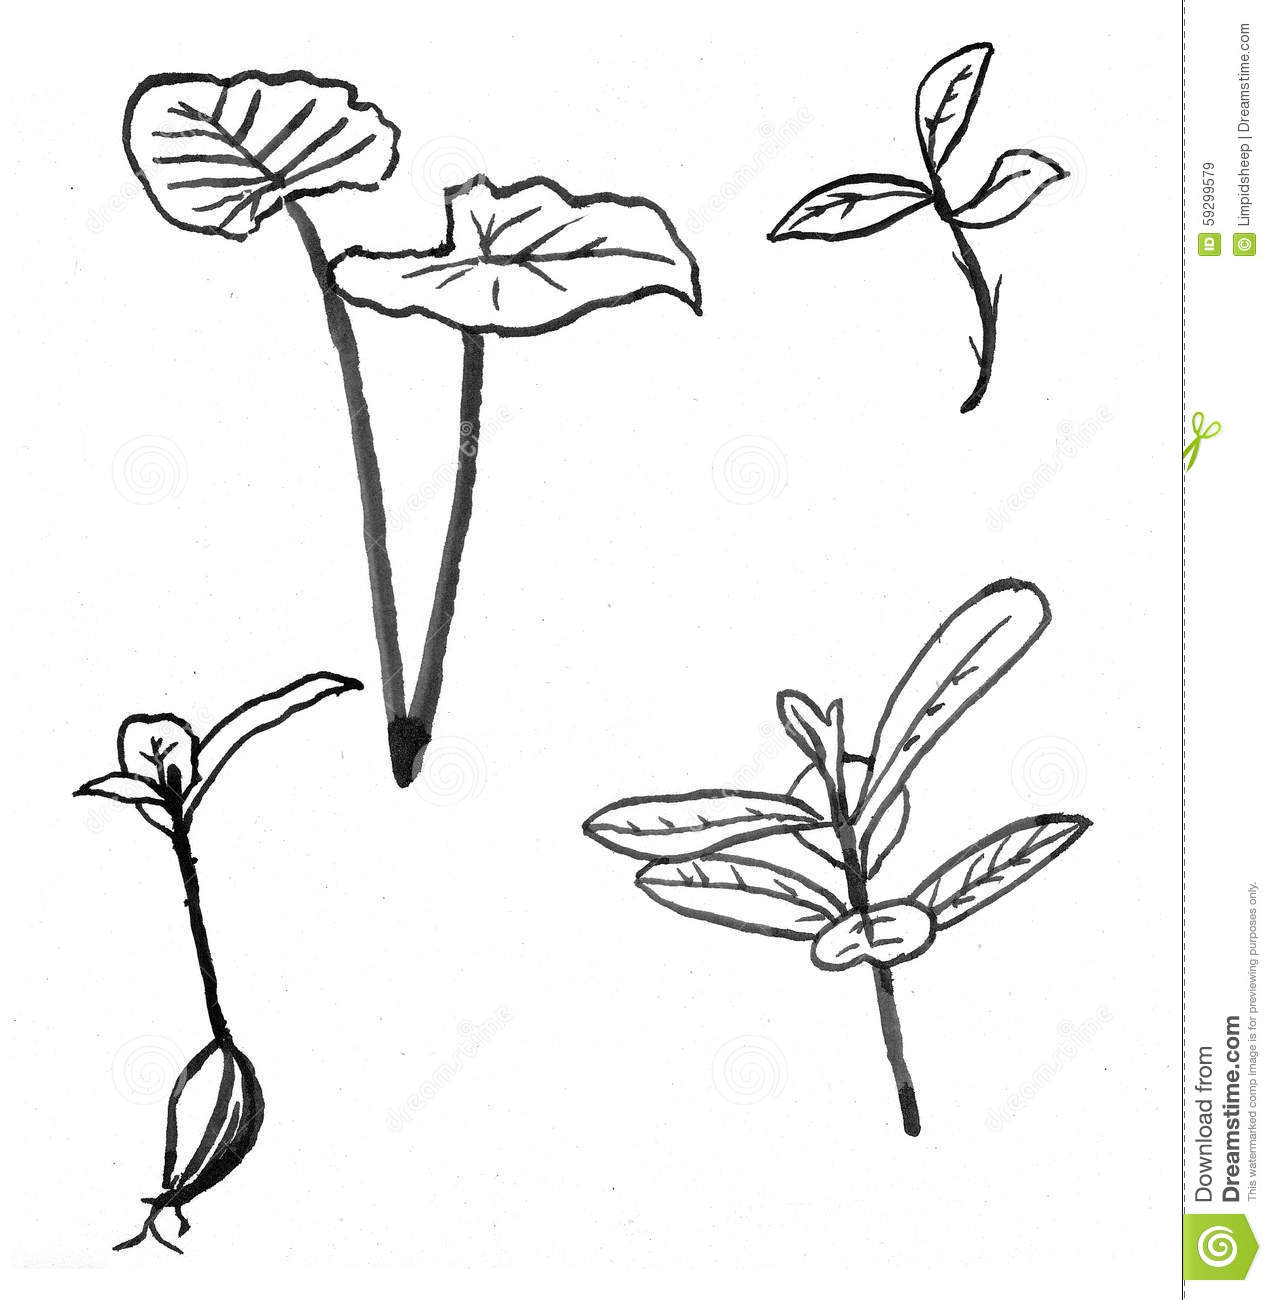 Line Drawing Zucchini : Leaves and flowers stock illustration image